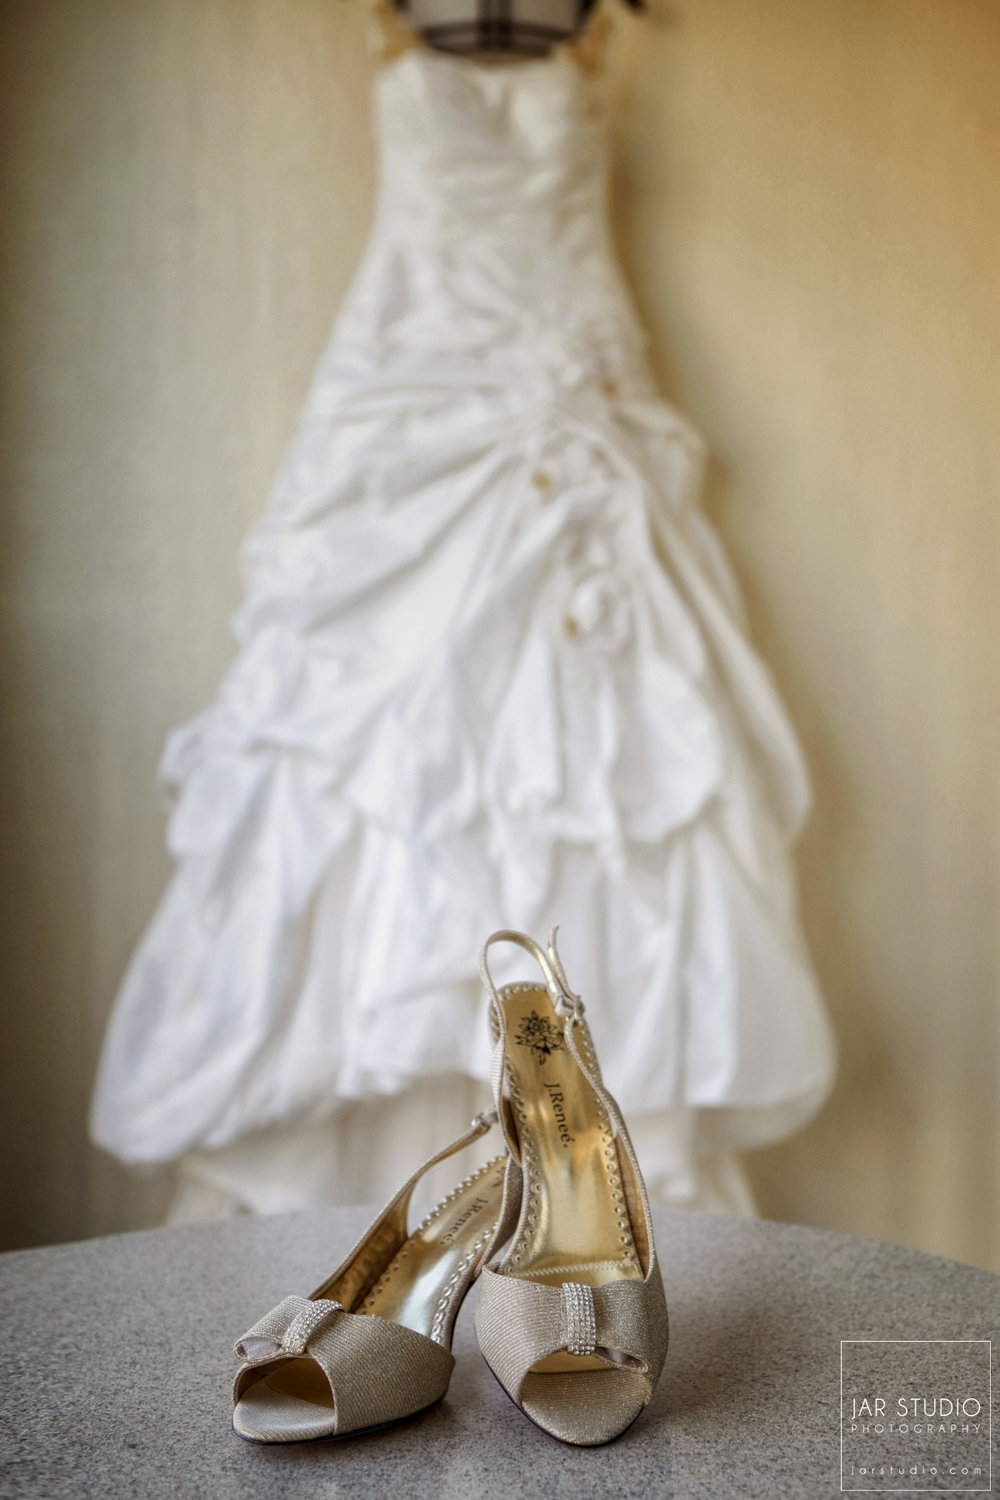 01-elegant-luxury-wedding-shoes-dress-orlando-weddings-jarstudio.JPG